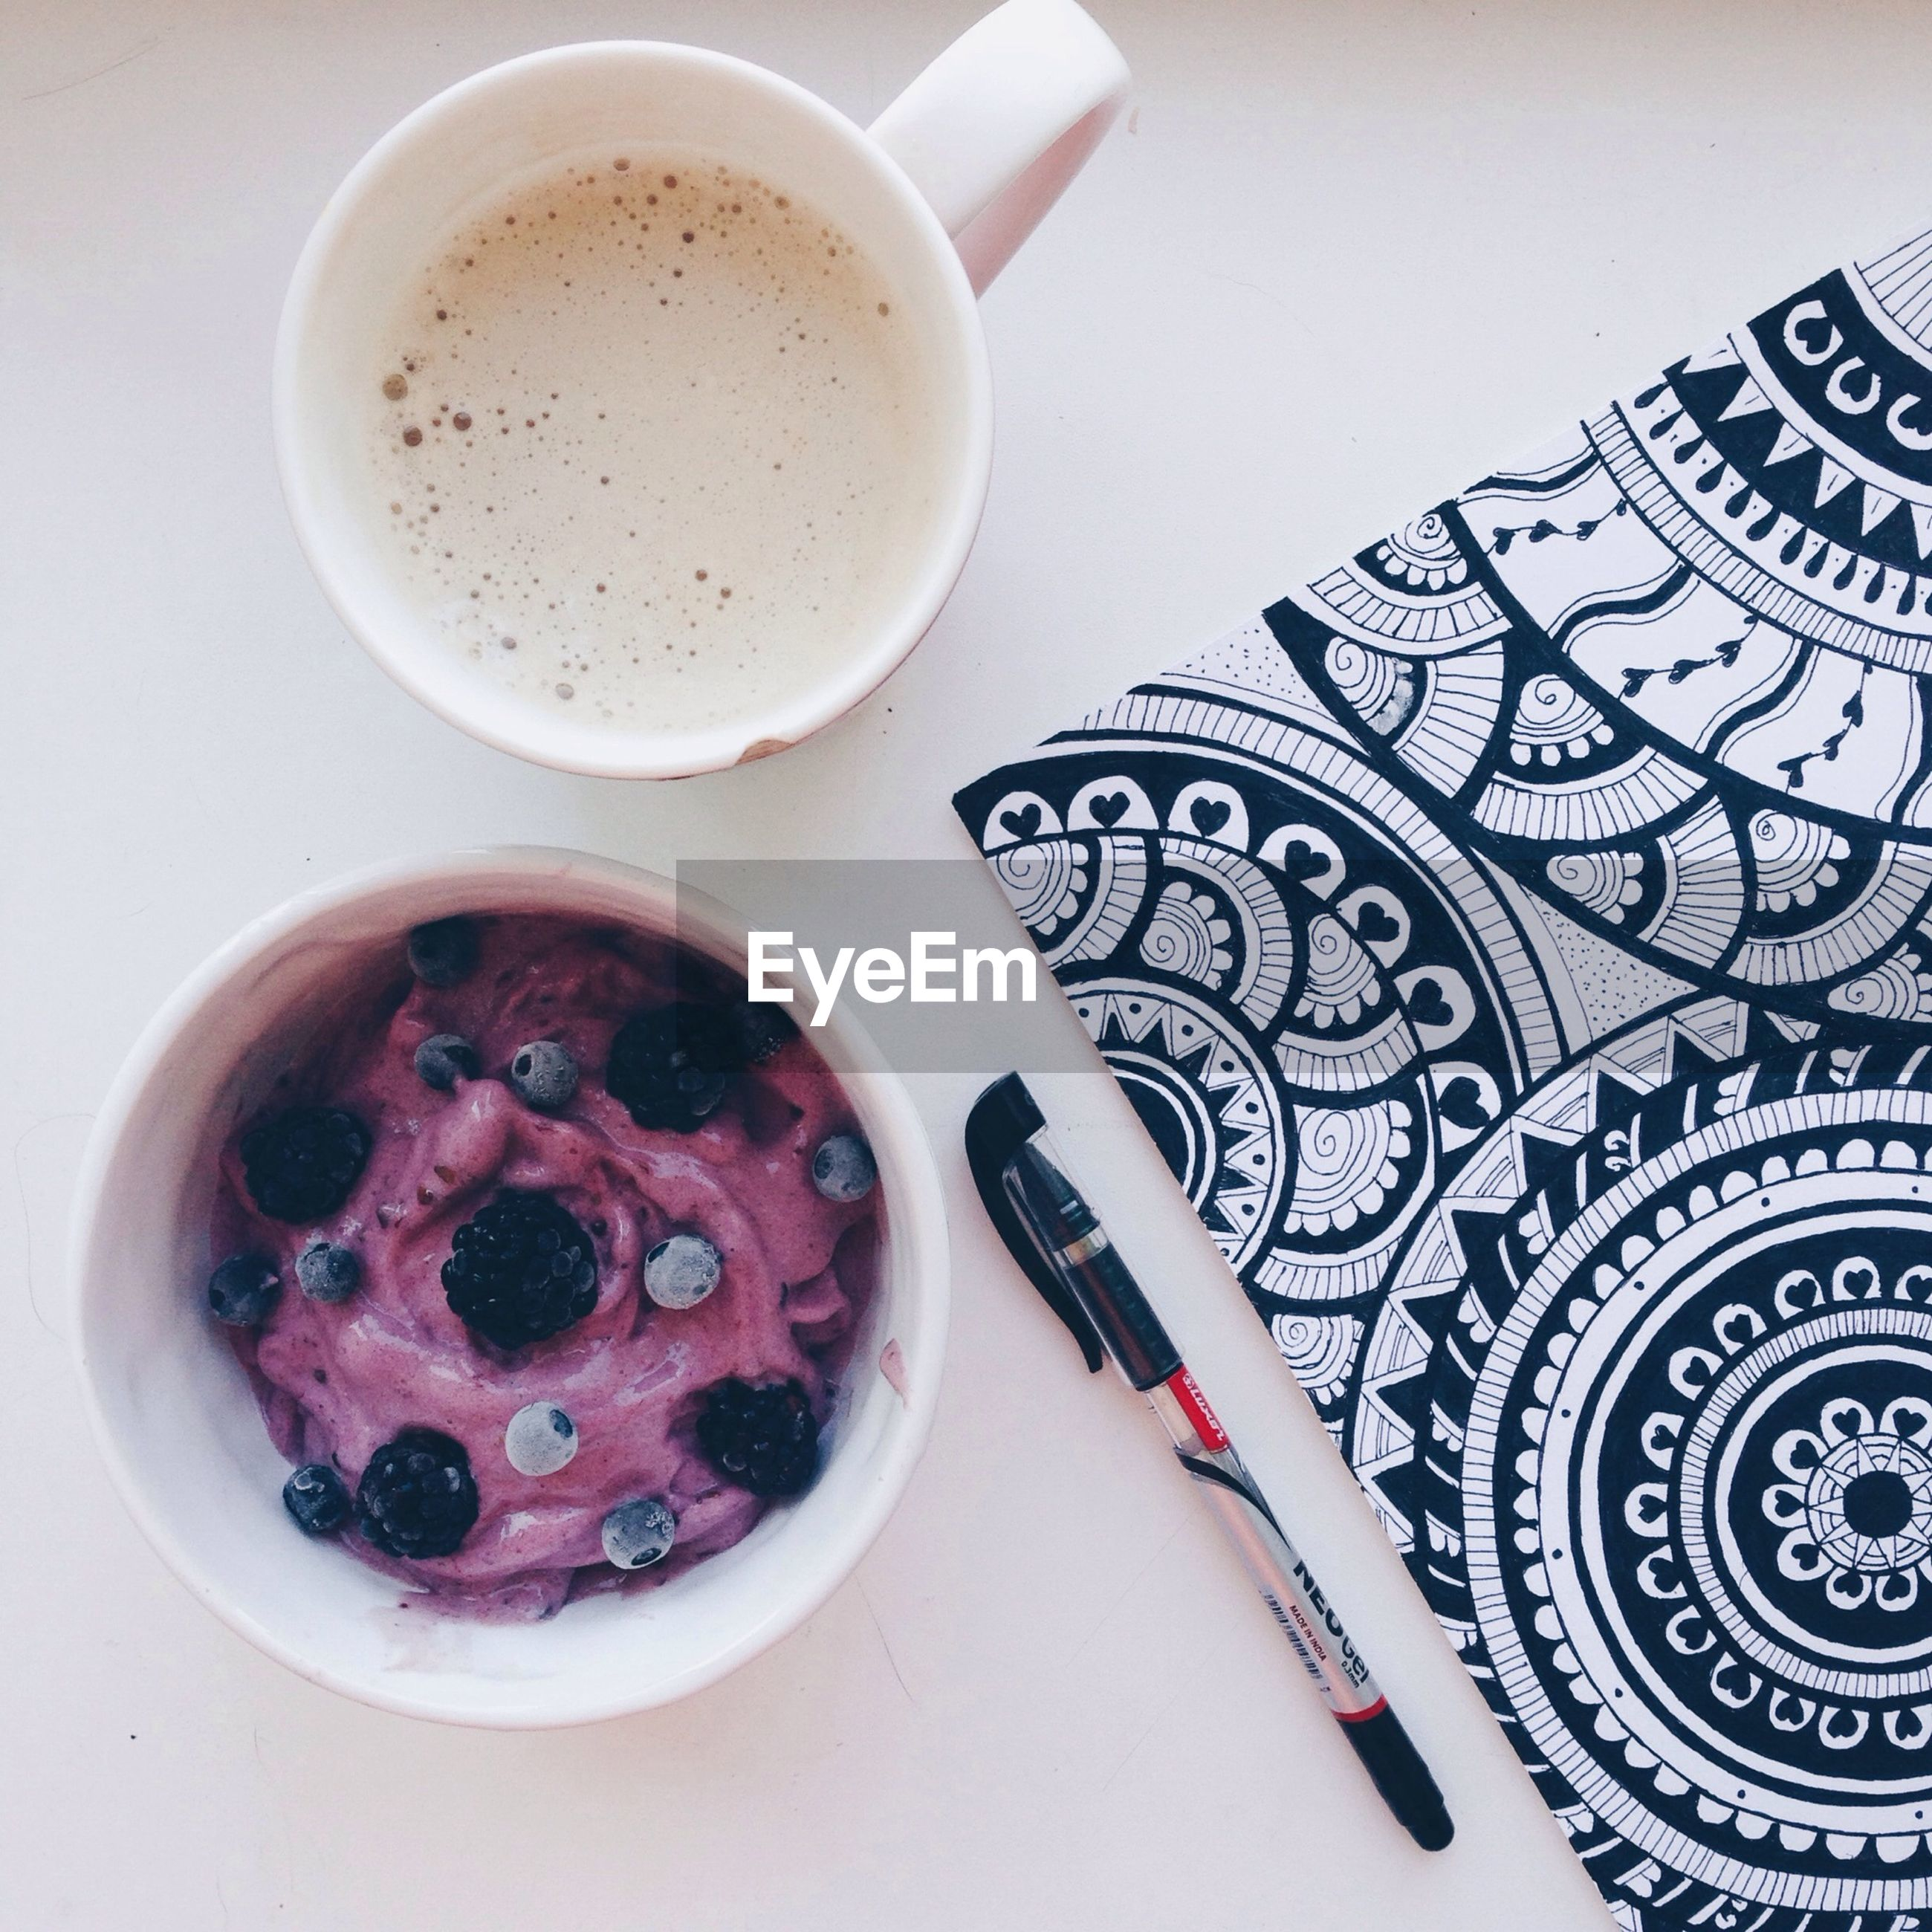 High angle view of berry yogurt with coffee cup and note pad on table